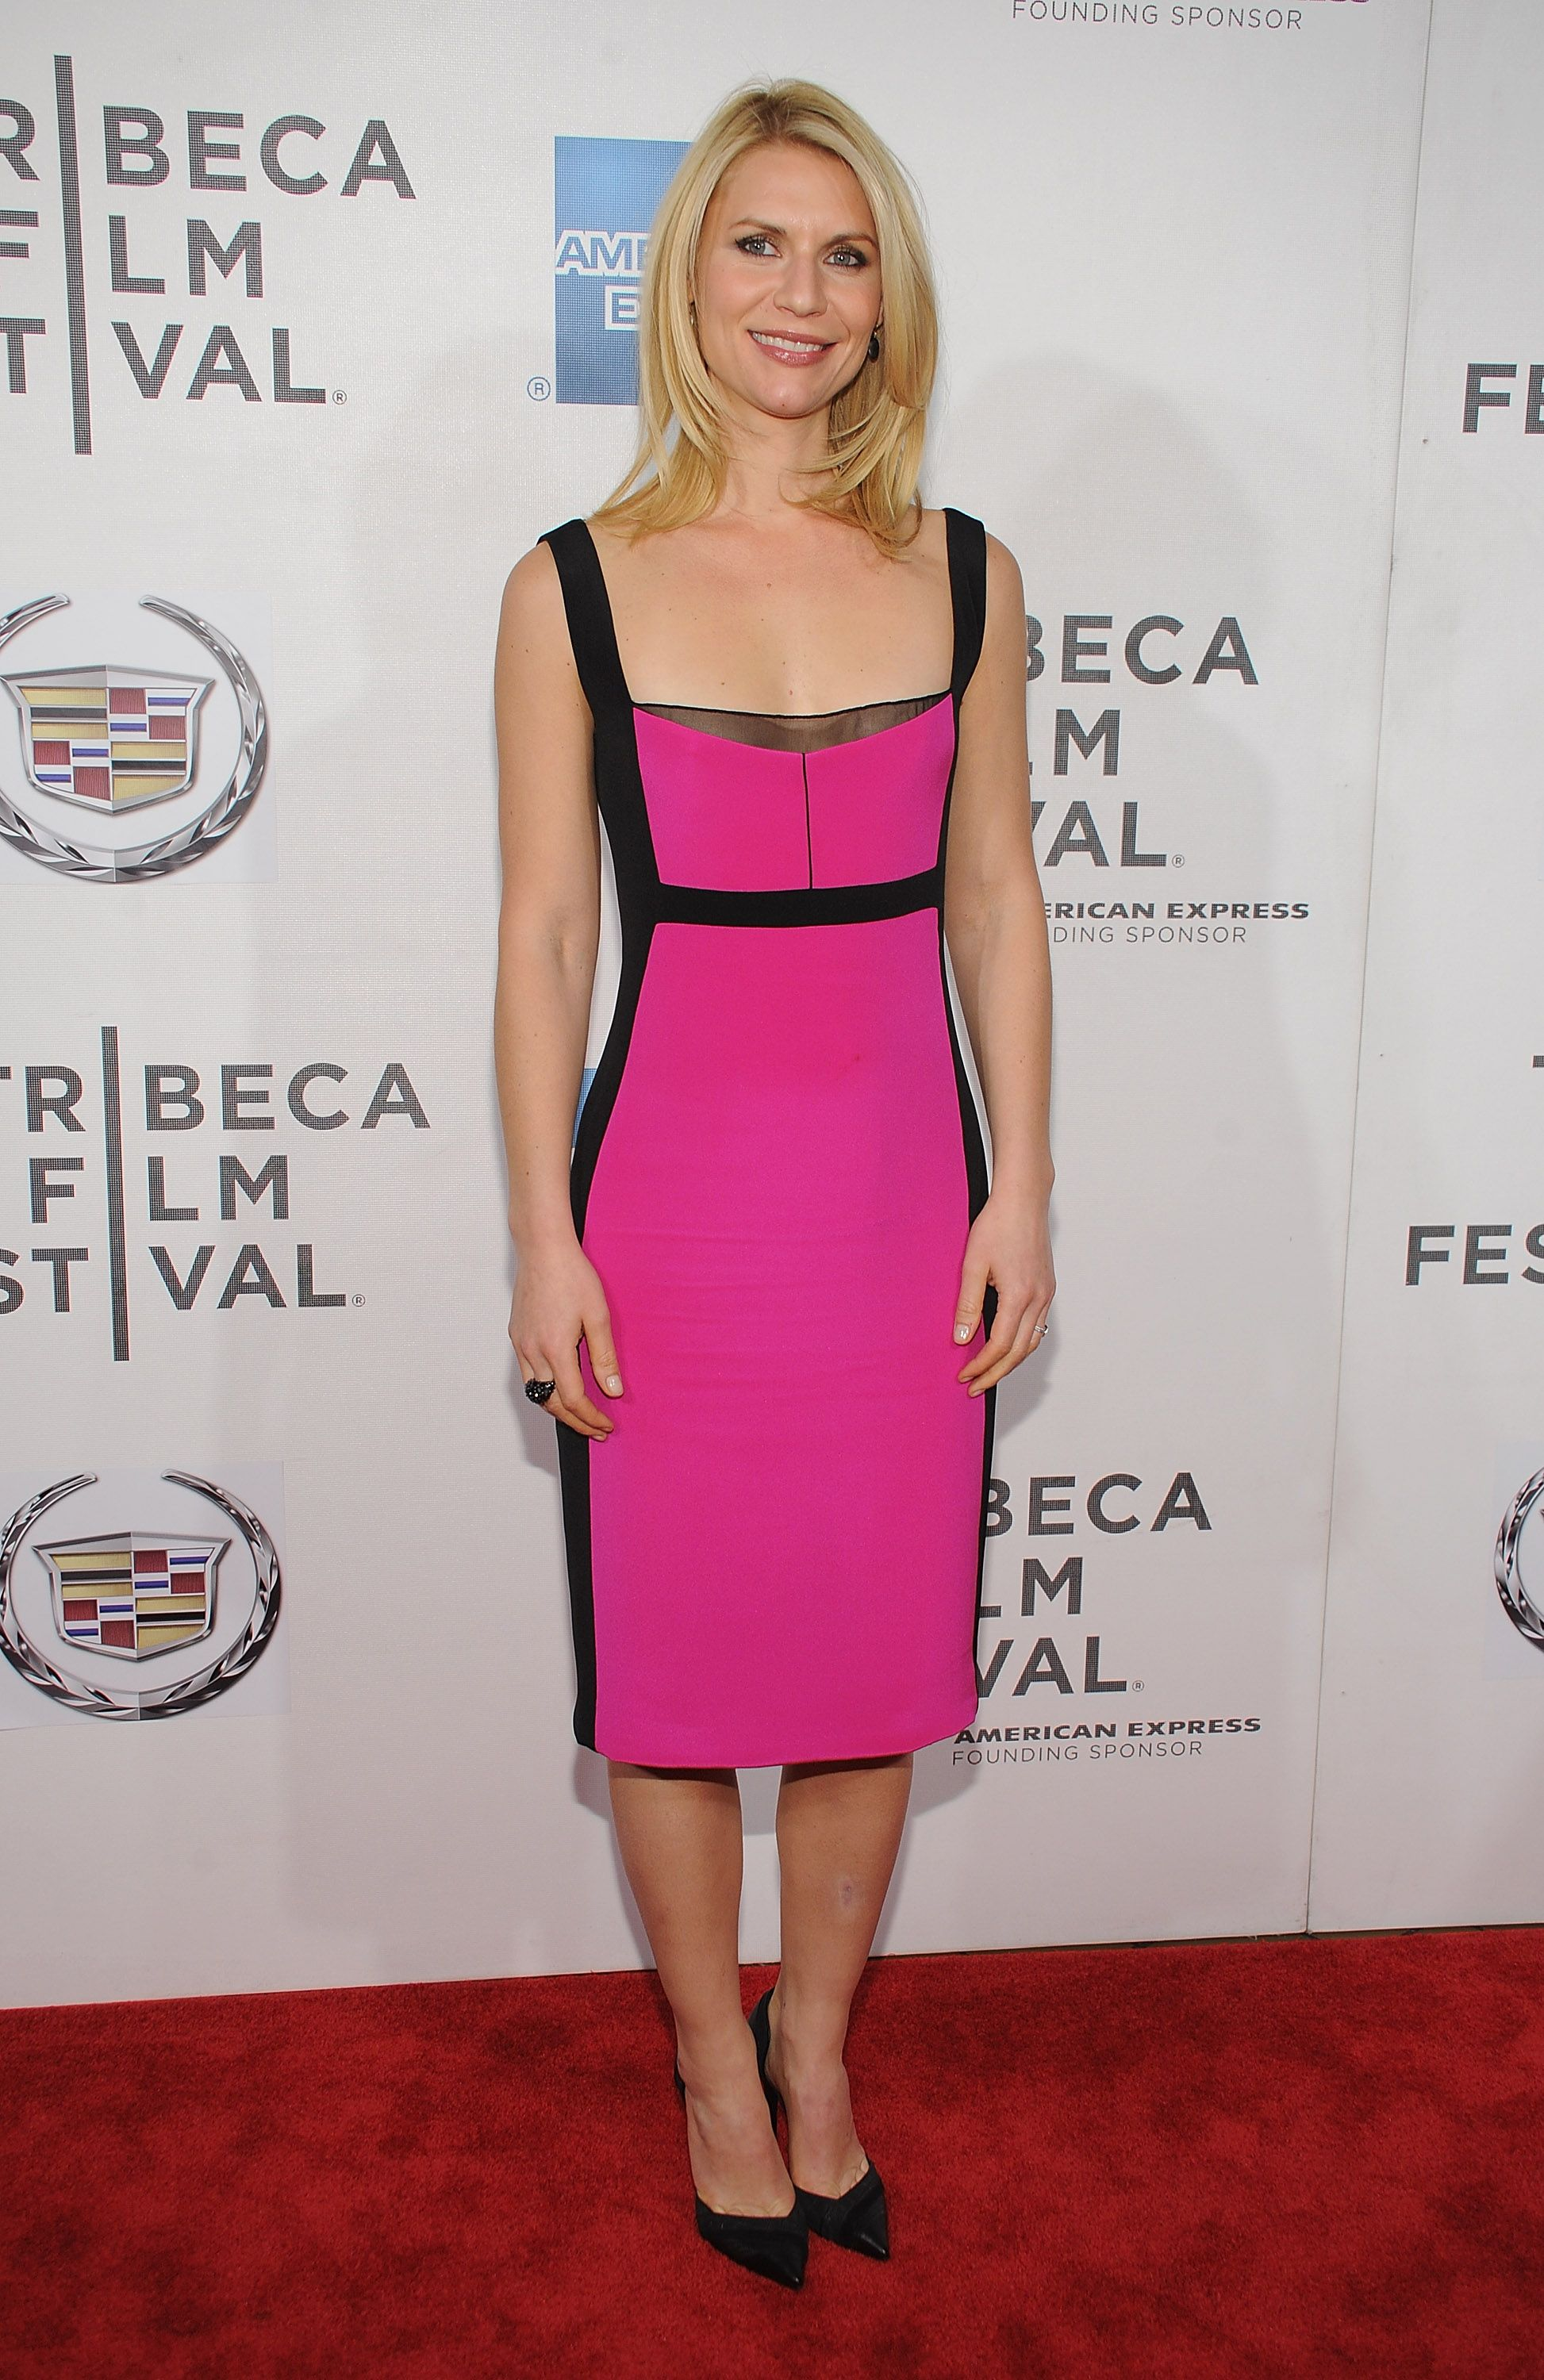 Claire-Danes-paired-pink-Narciso-Rodriguez-dress-black-heels.jpg ...